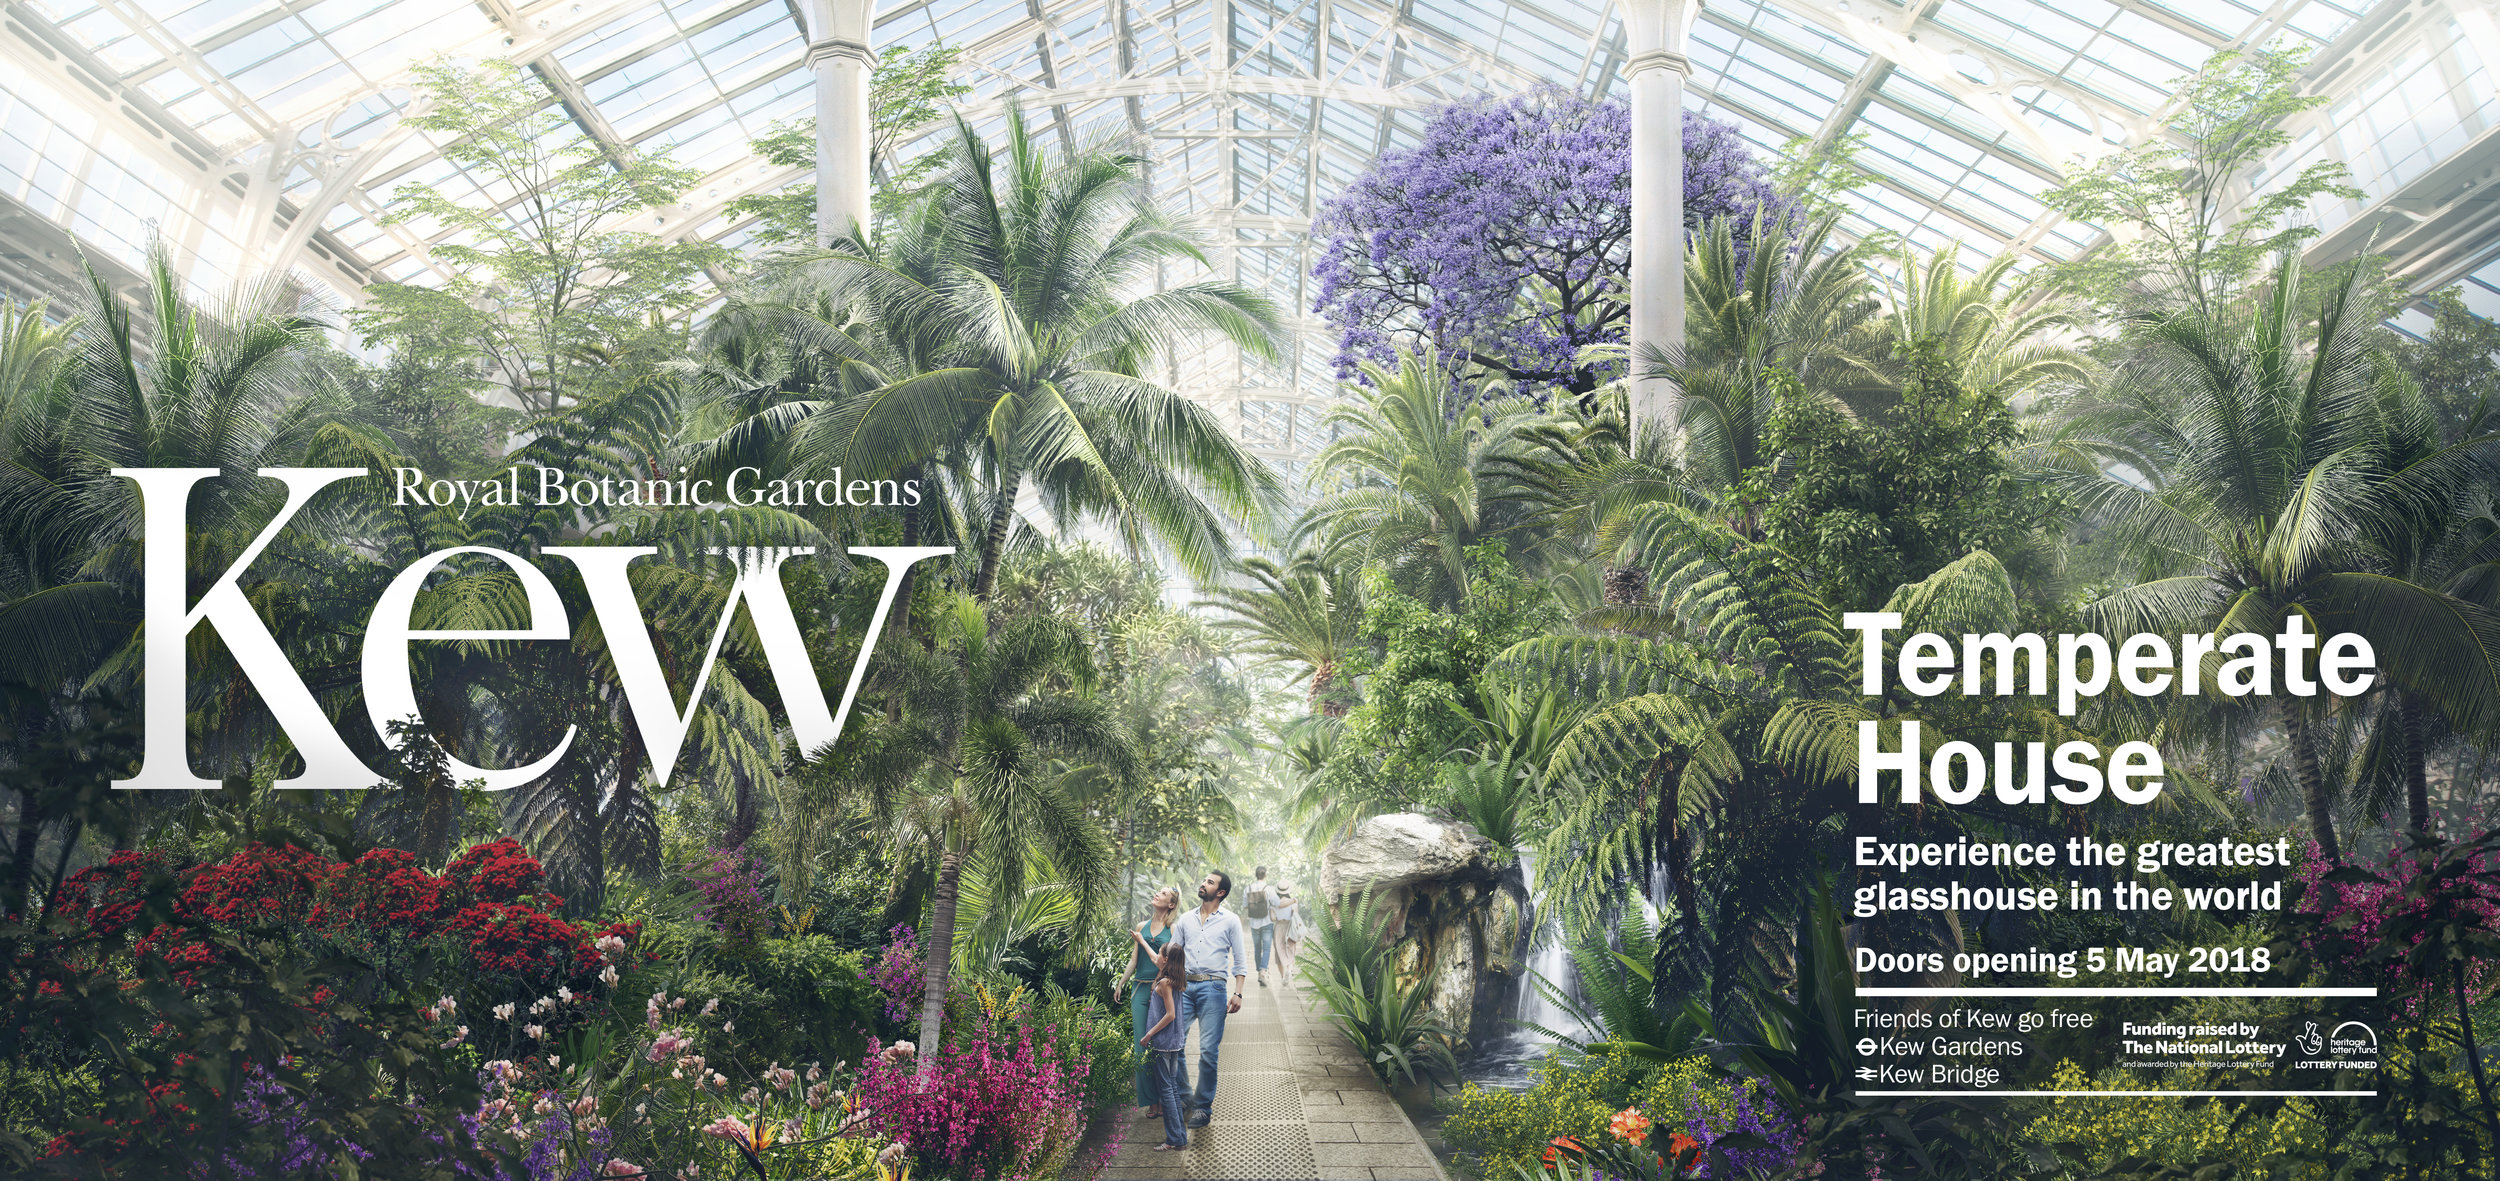 2018_KEW_TemperateHouse_LS_RGB_AW.jpg